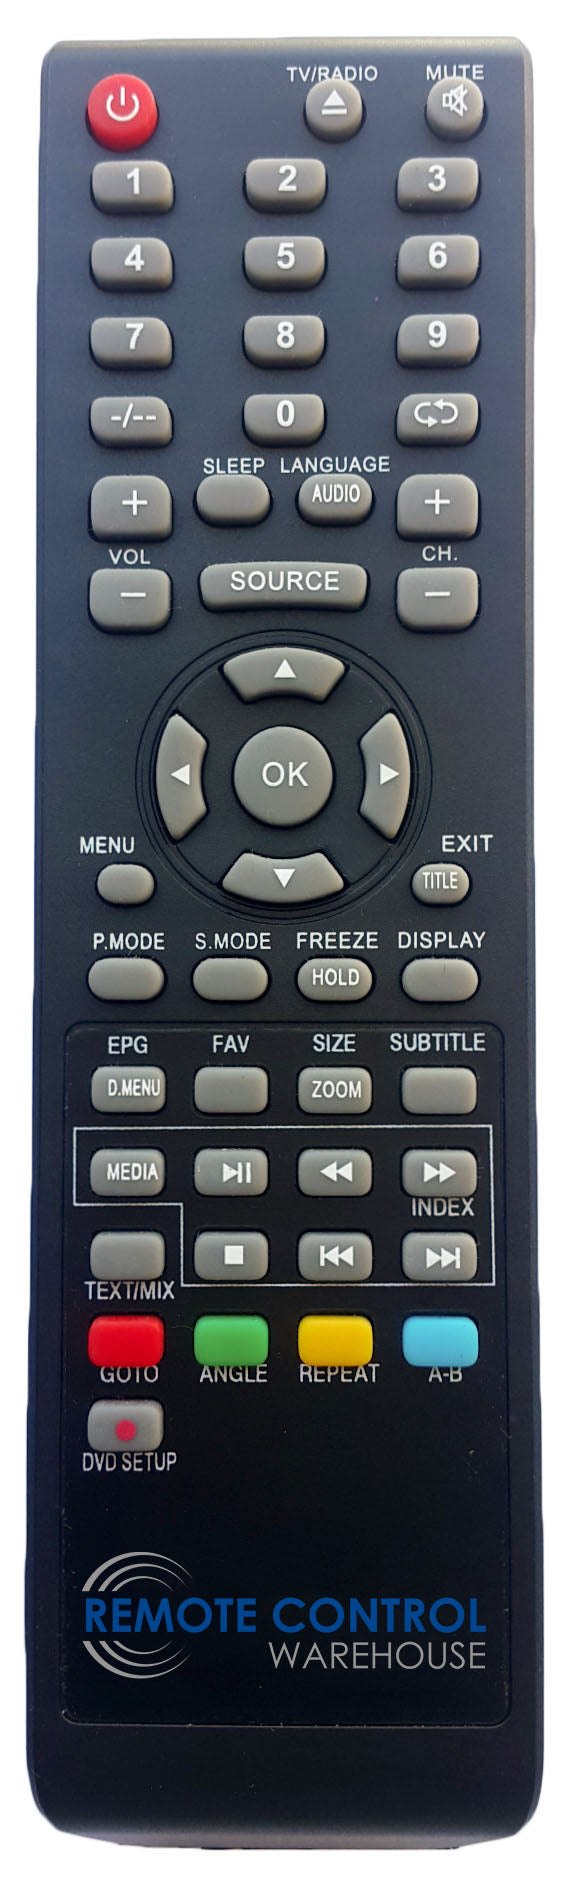 REPLACEMENT BAUHN REMOTE CONTROL -  ATV55UHD-0716  ATV55UHD0716 LCD TV - Remote Control Warehouse